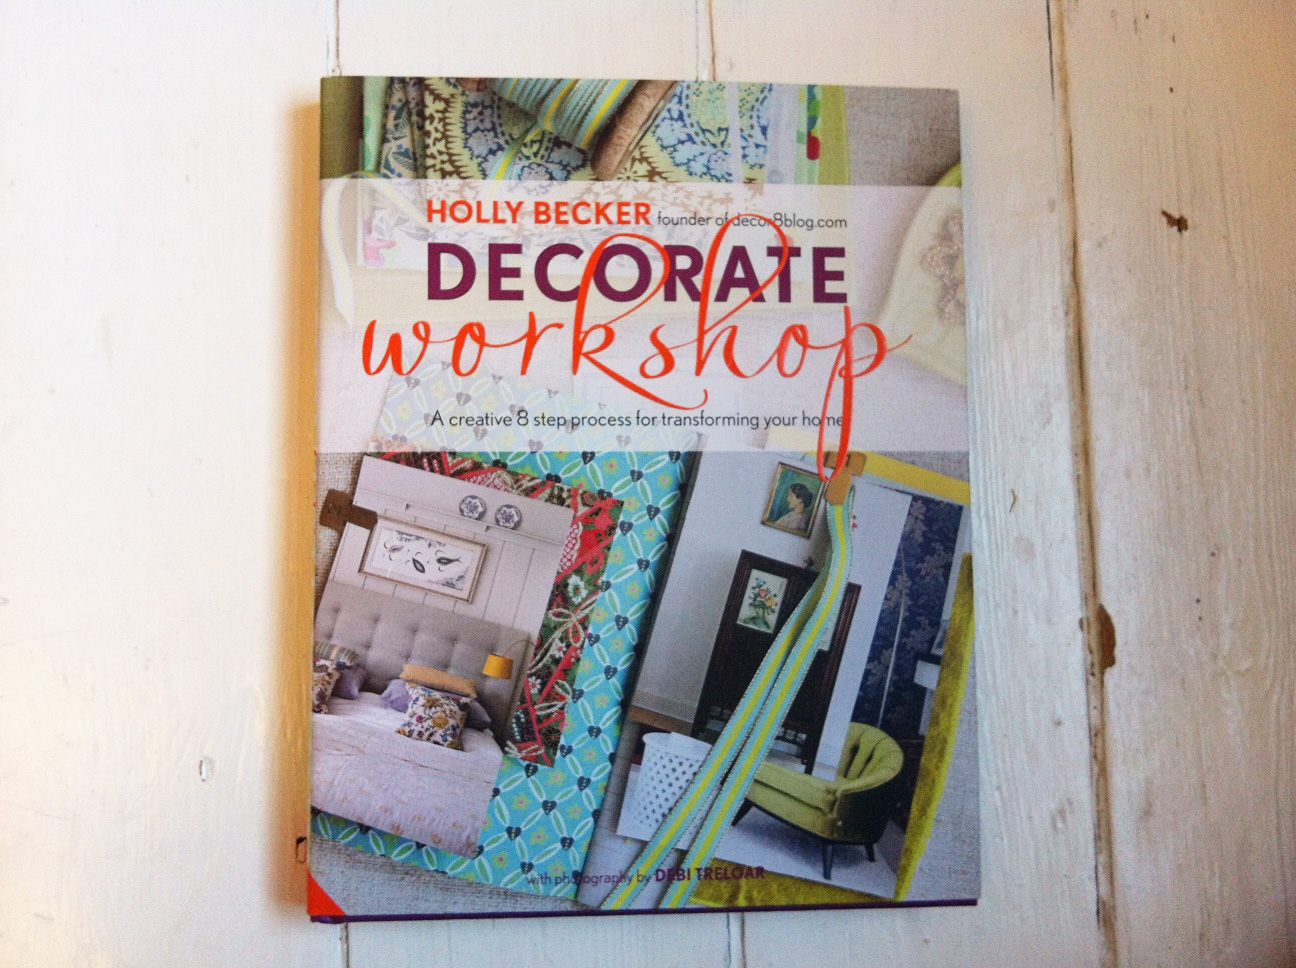 Decorate Workshop 01